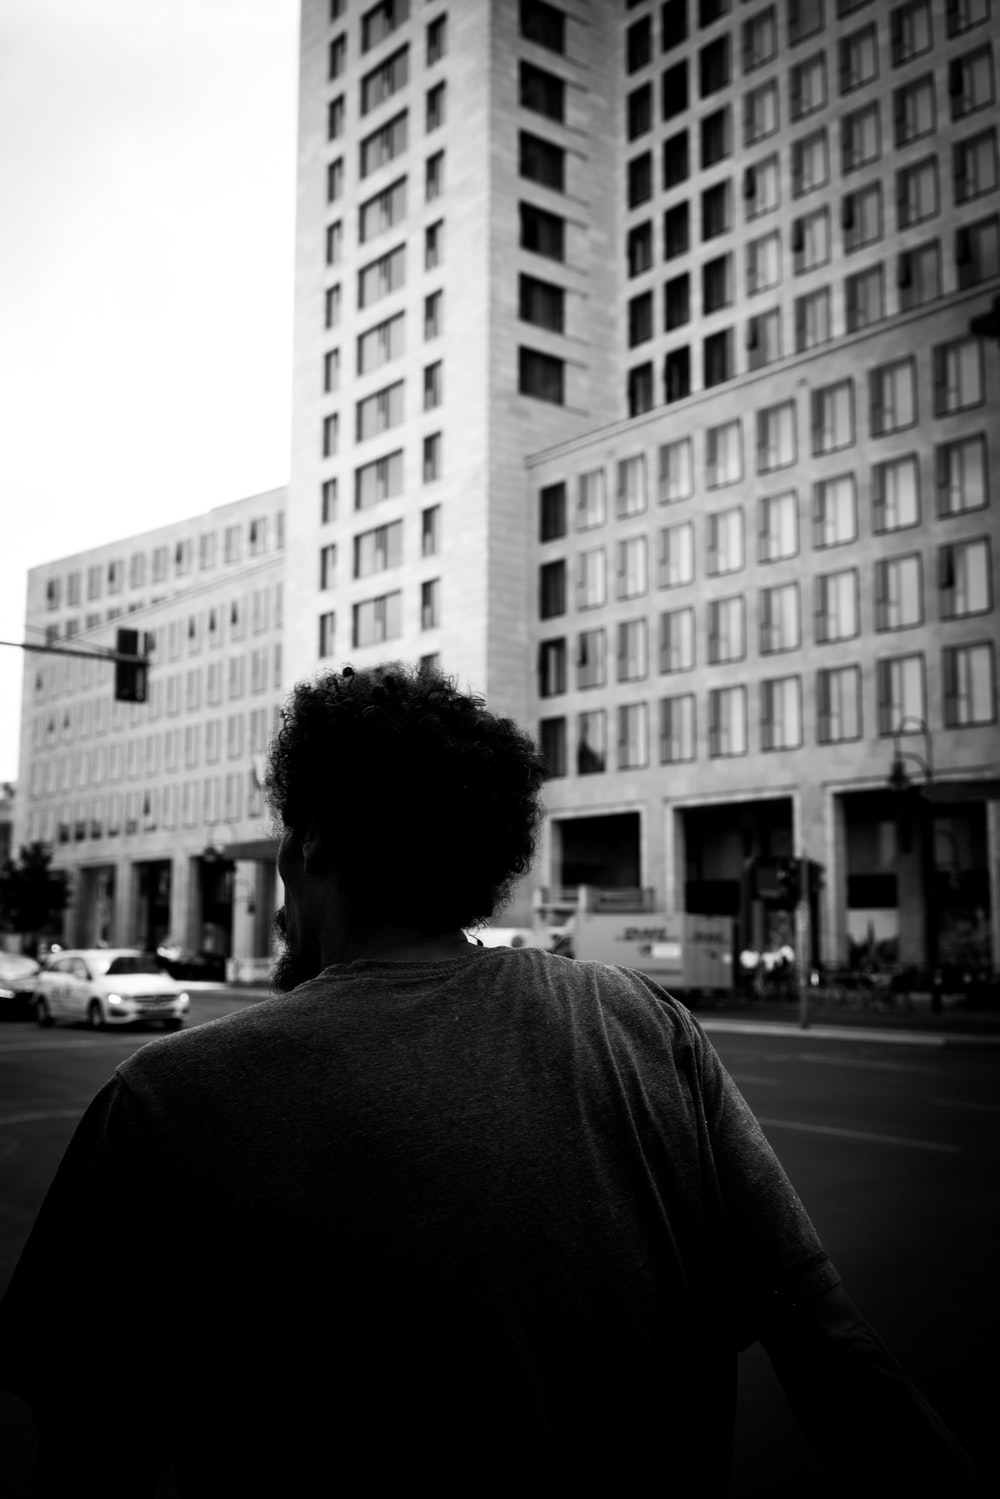 person near the building